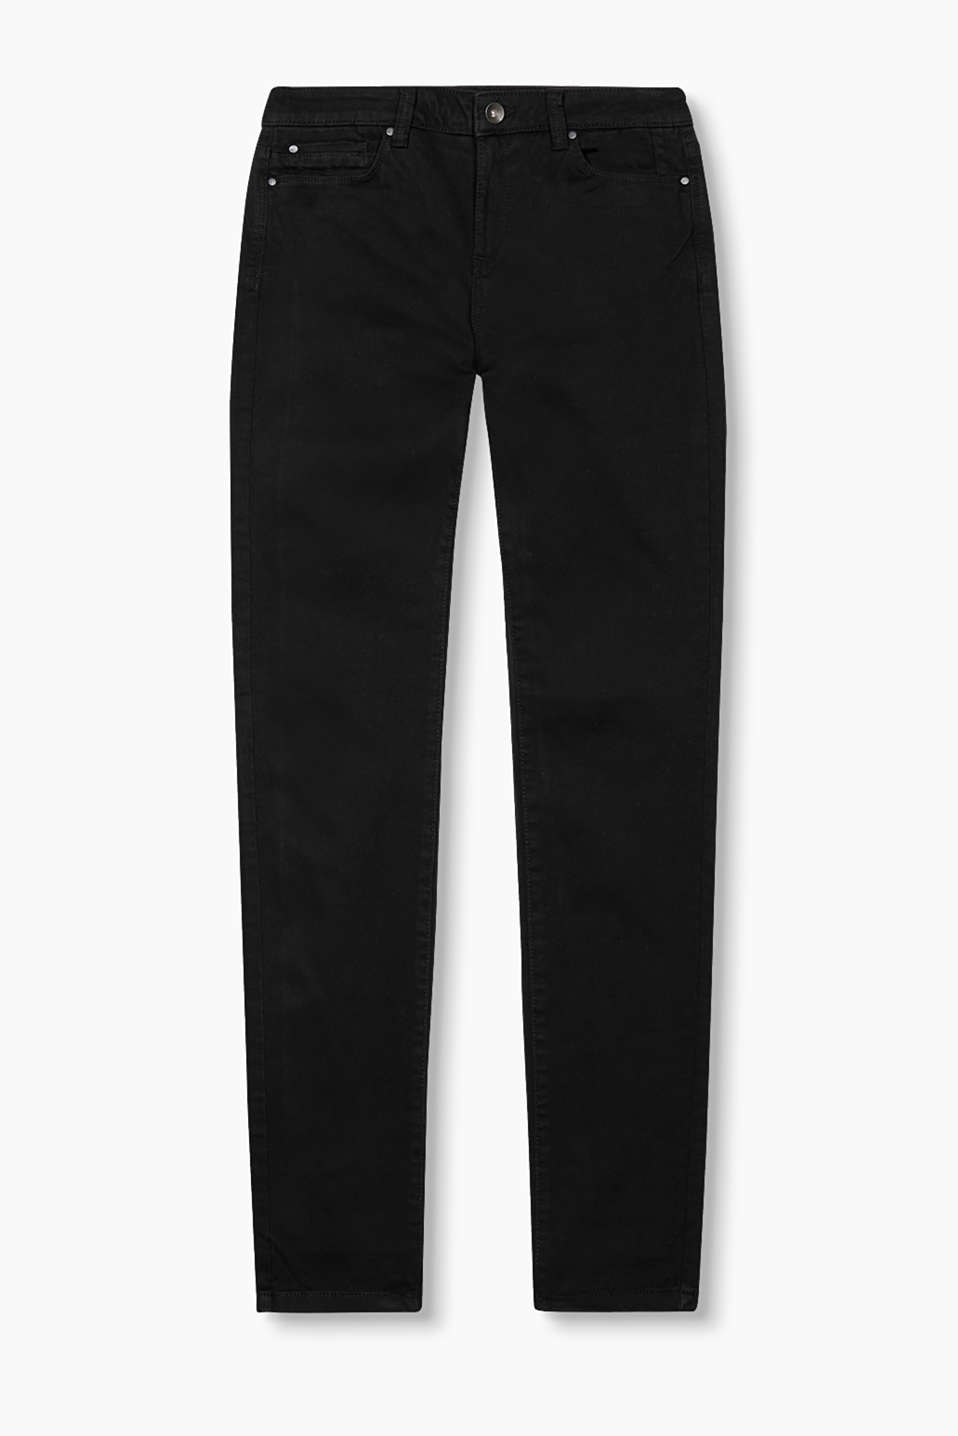 Basic trousers in a five-pocket design